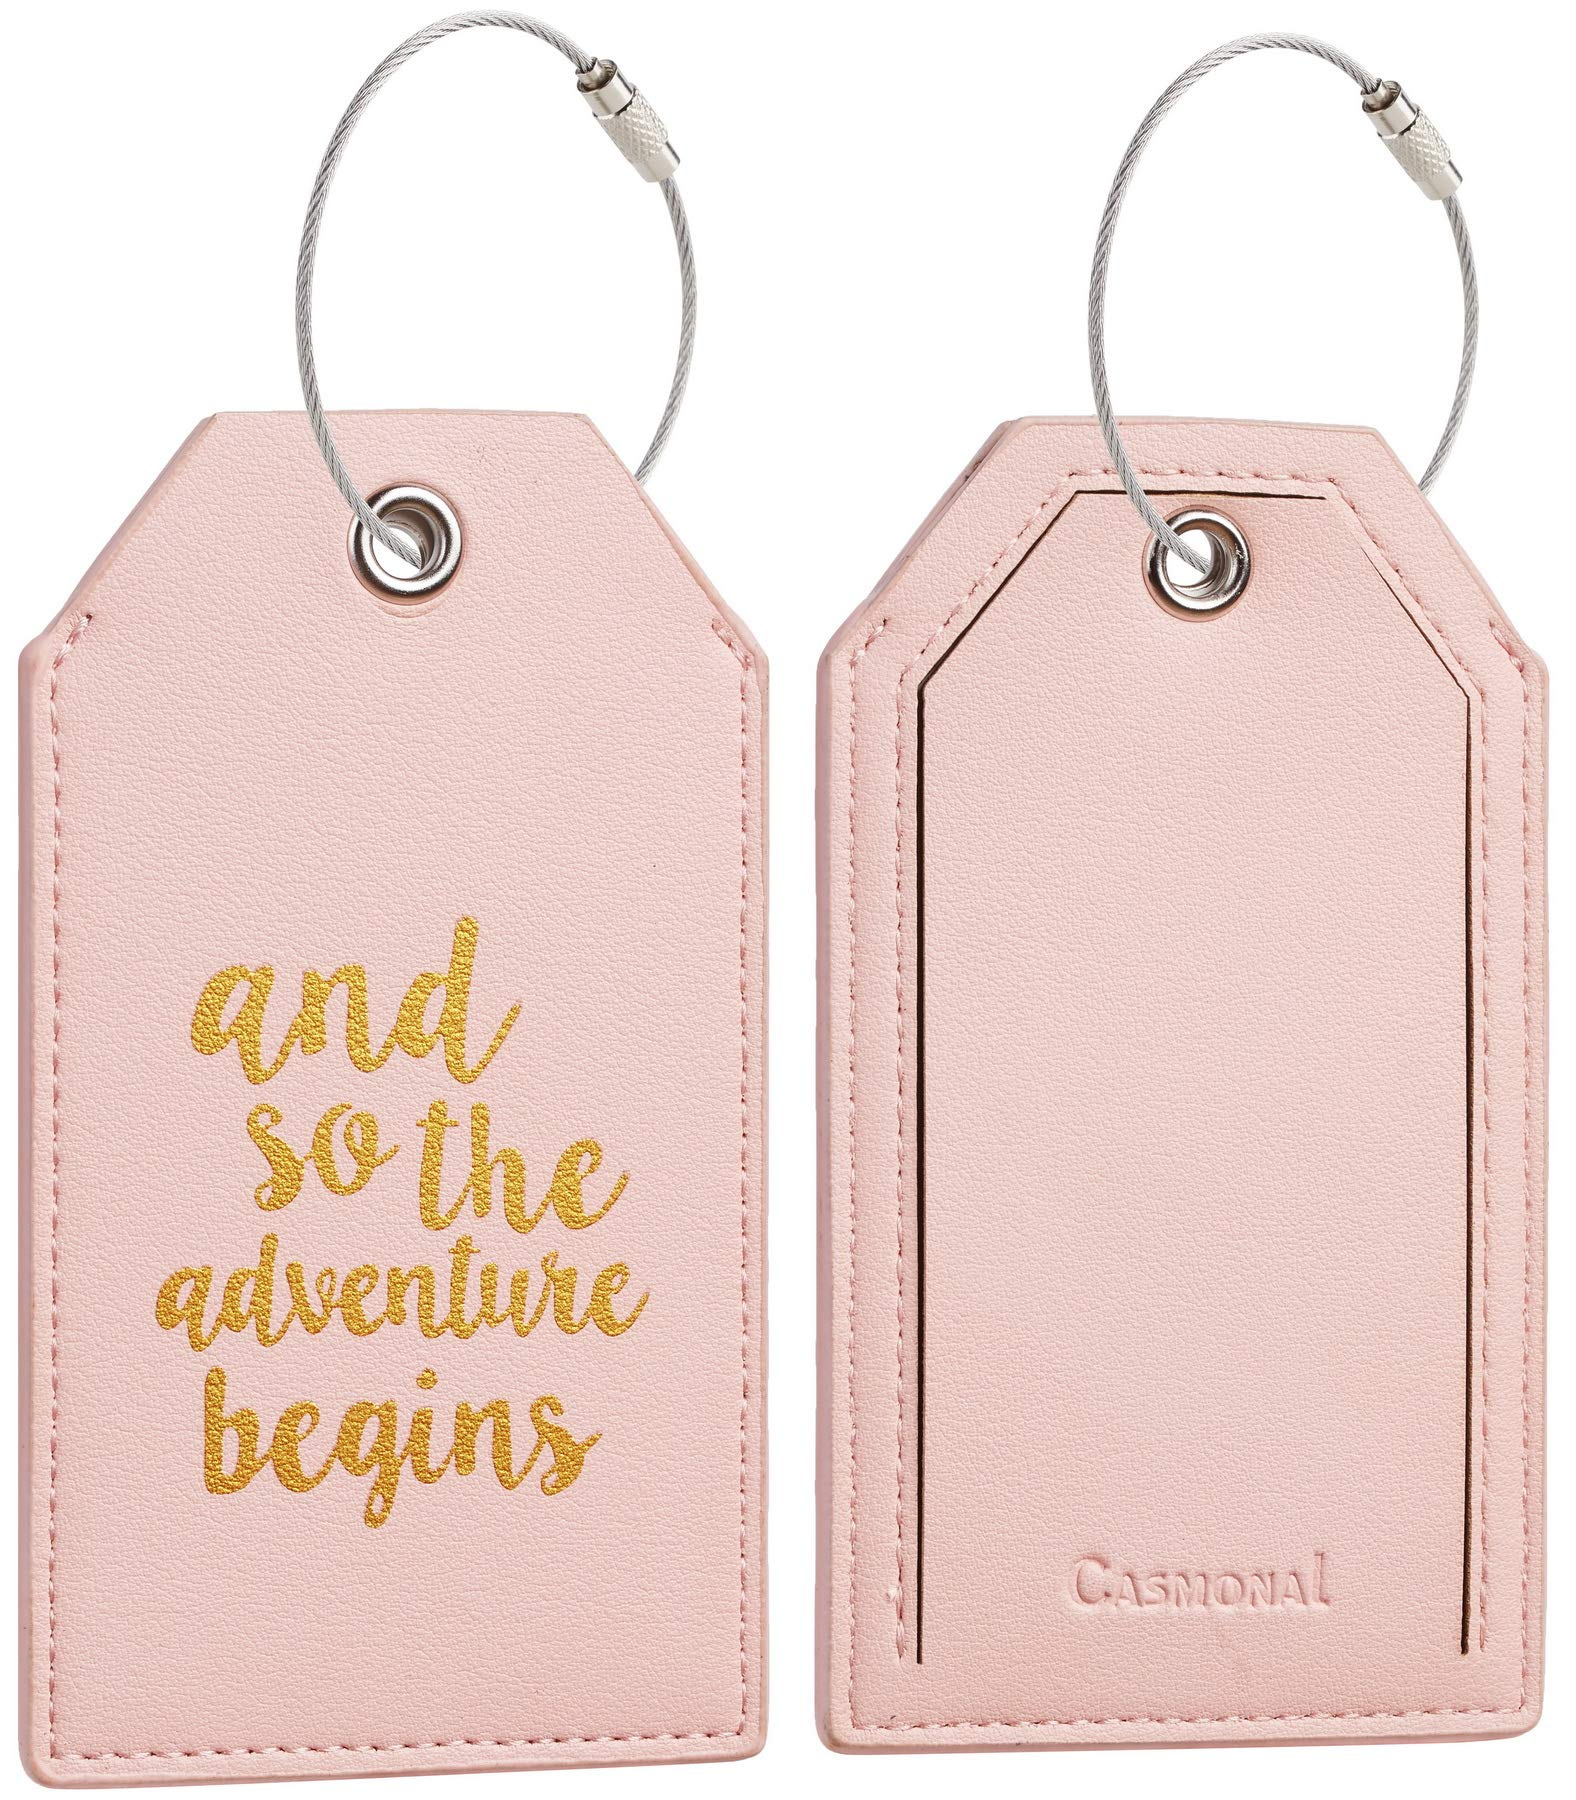 Casmonal Luggage Tags with Full Back Privacy Cover w/Steel Loops (pink 02 pcs set) by Casmonal (Image #3)